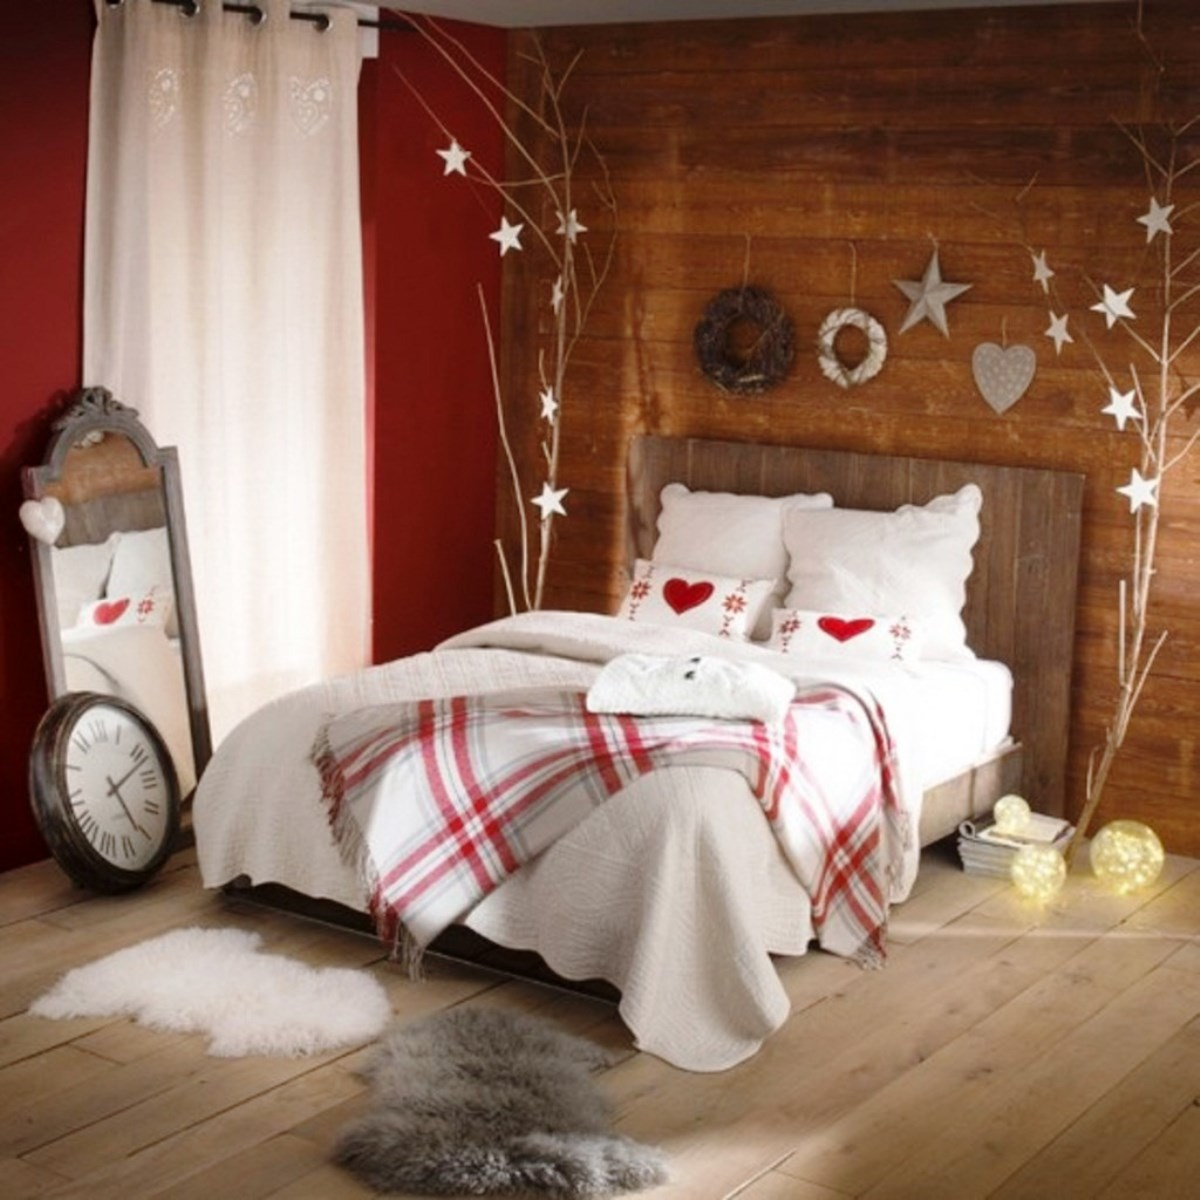 30 christmas bedroom decorations ideas christmas bedroom decor ideas